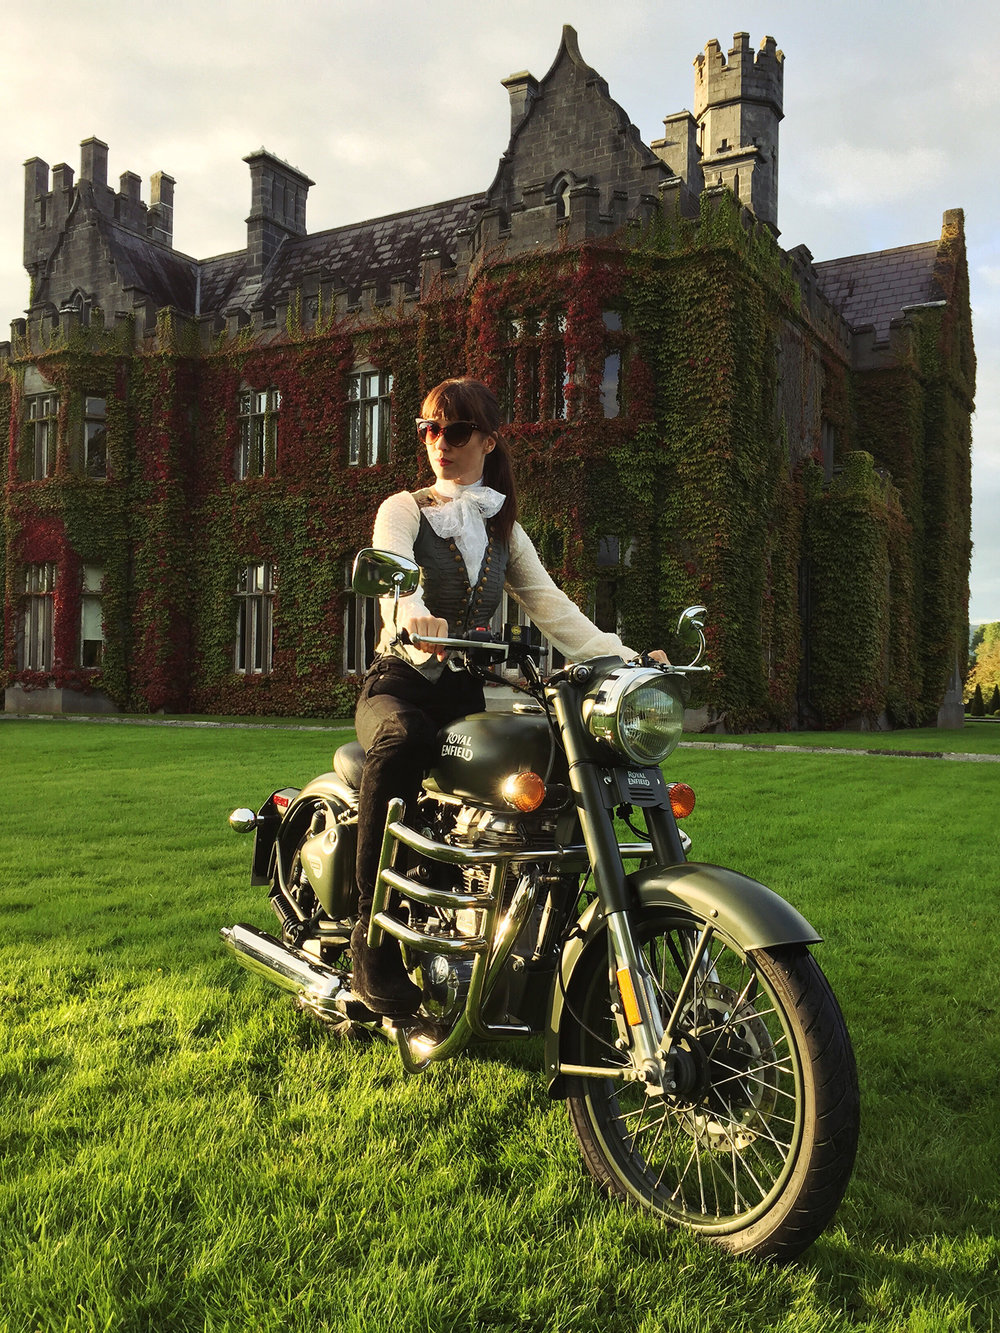 Kojii Helnwein and her Royal Enfield